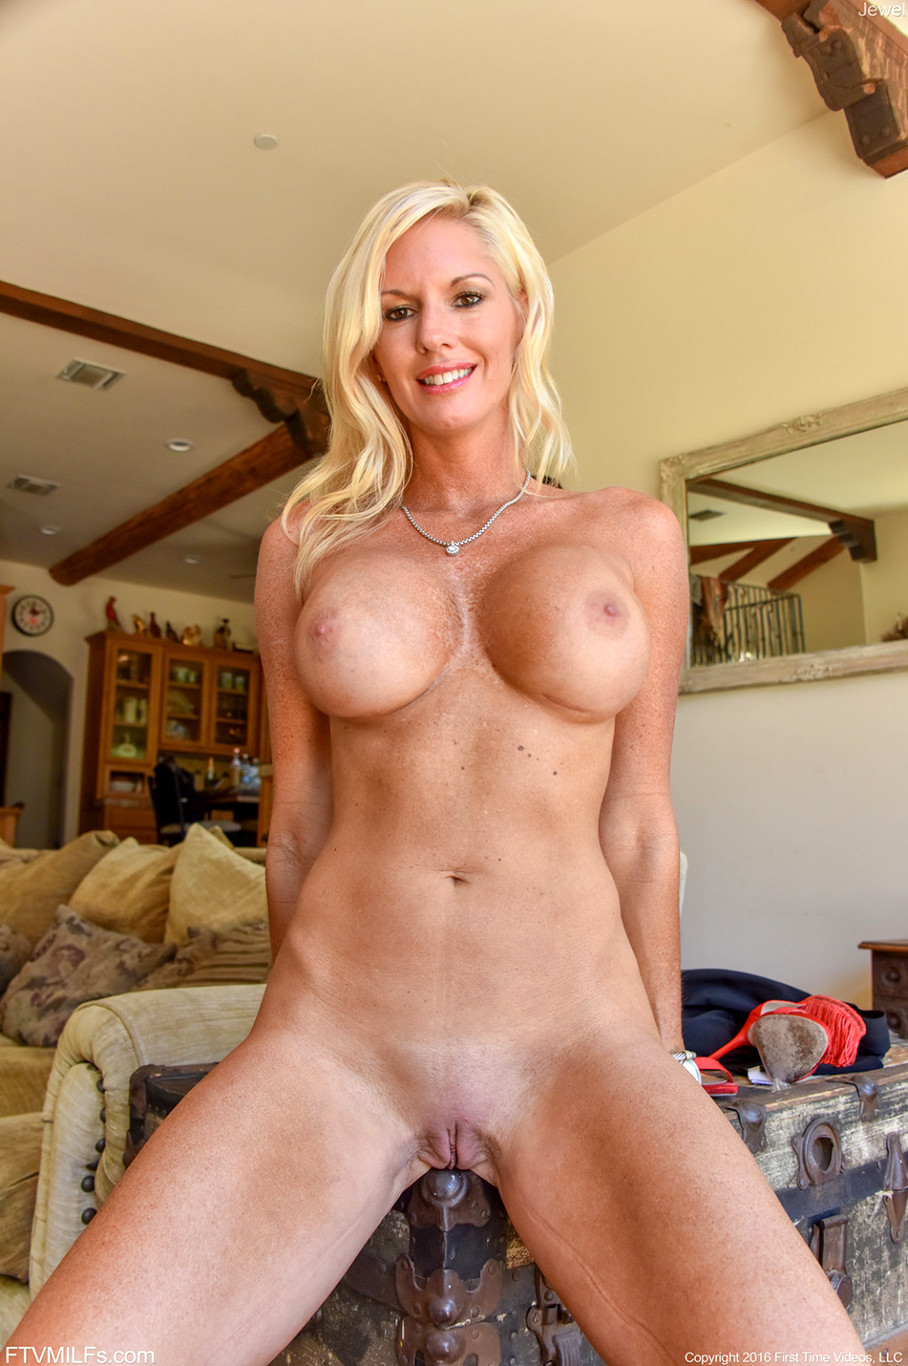 Speaking, would big tits milf pussy